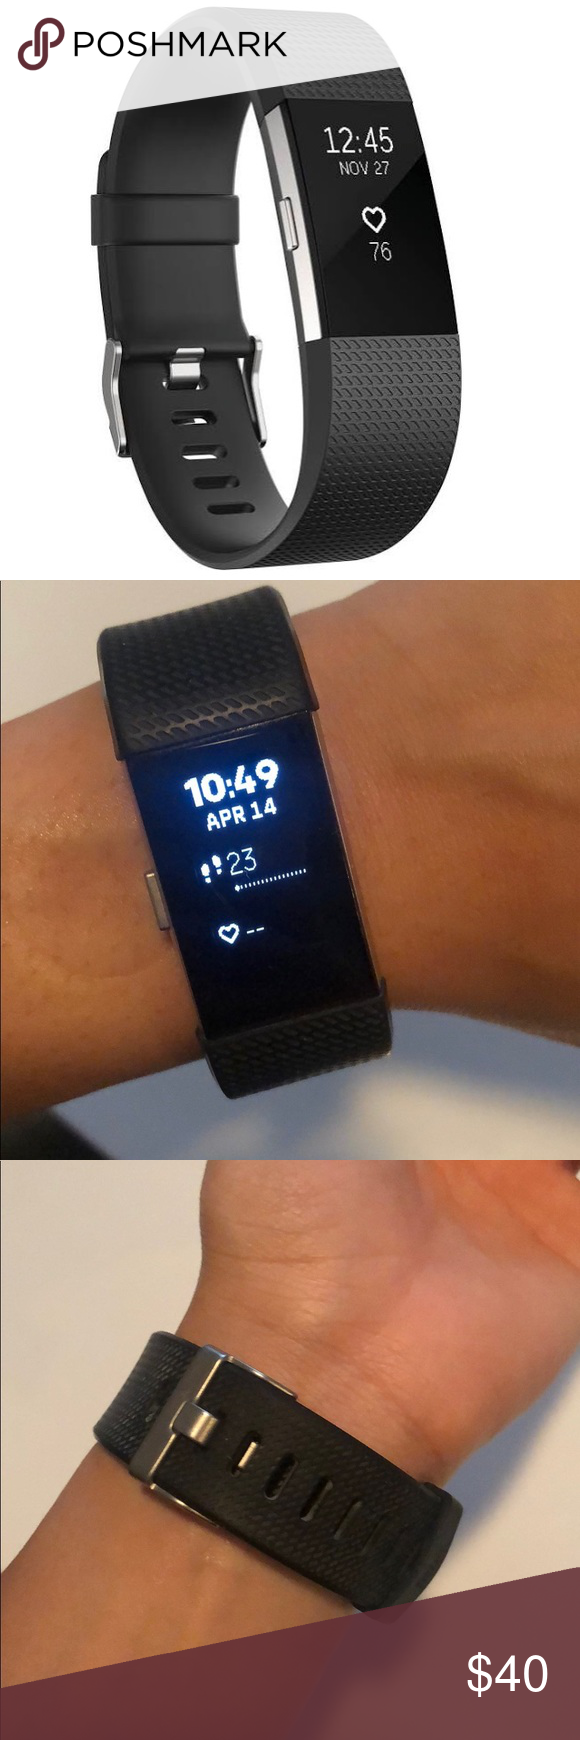 Fitbit Charge 2 with HR Monitor (small), Black Good